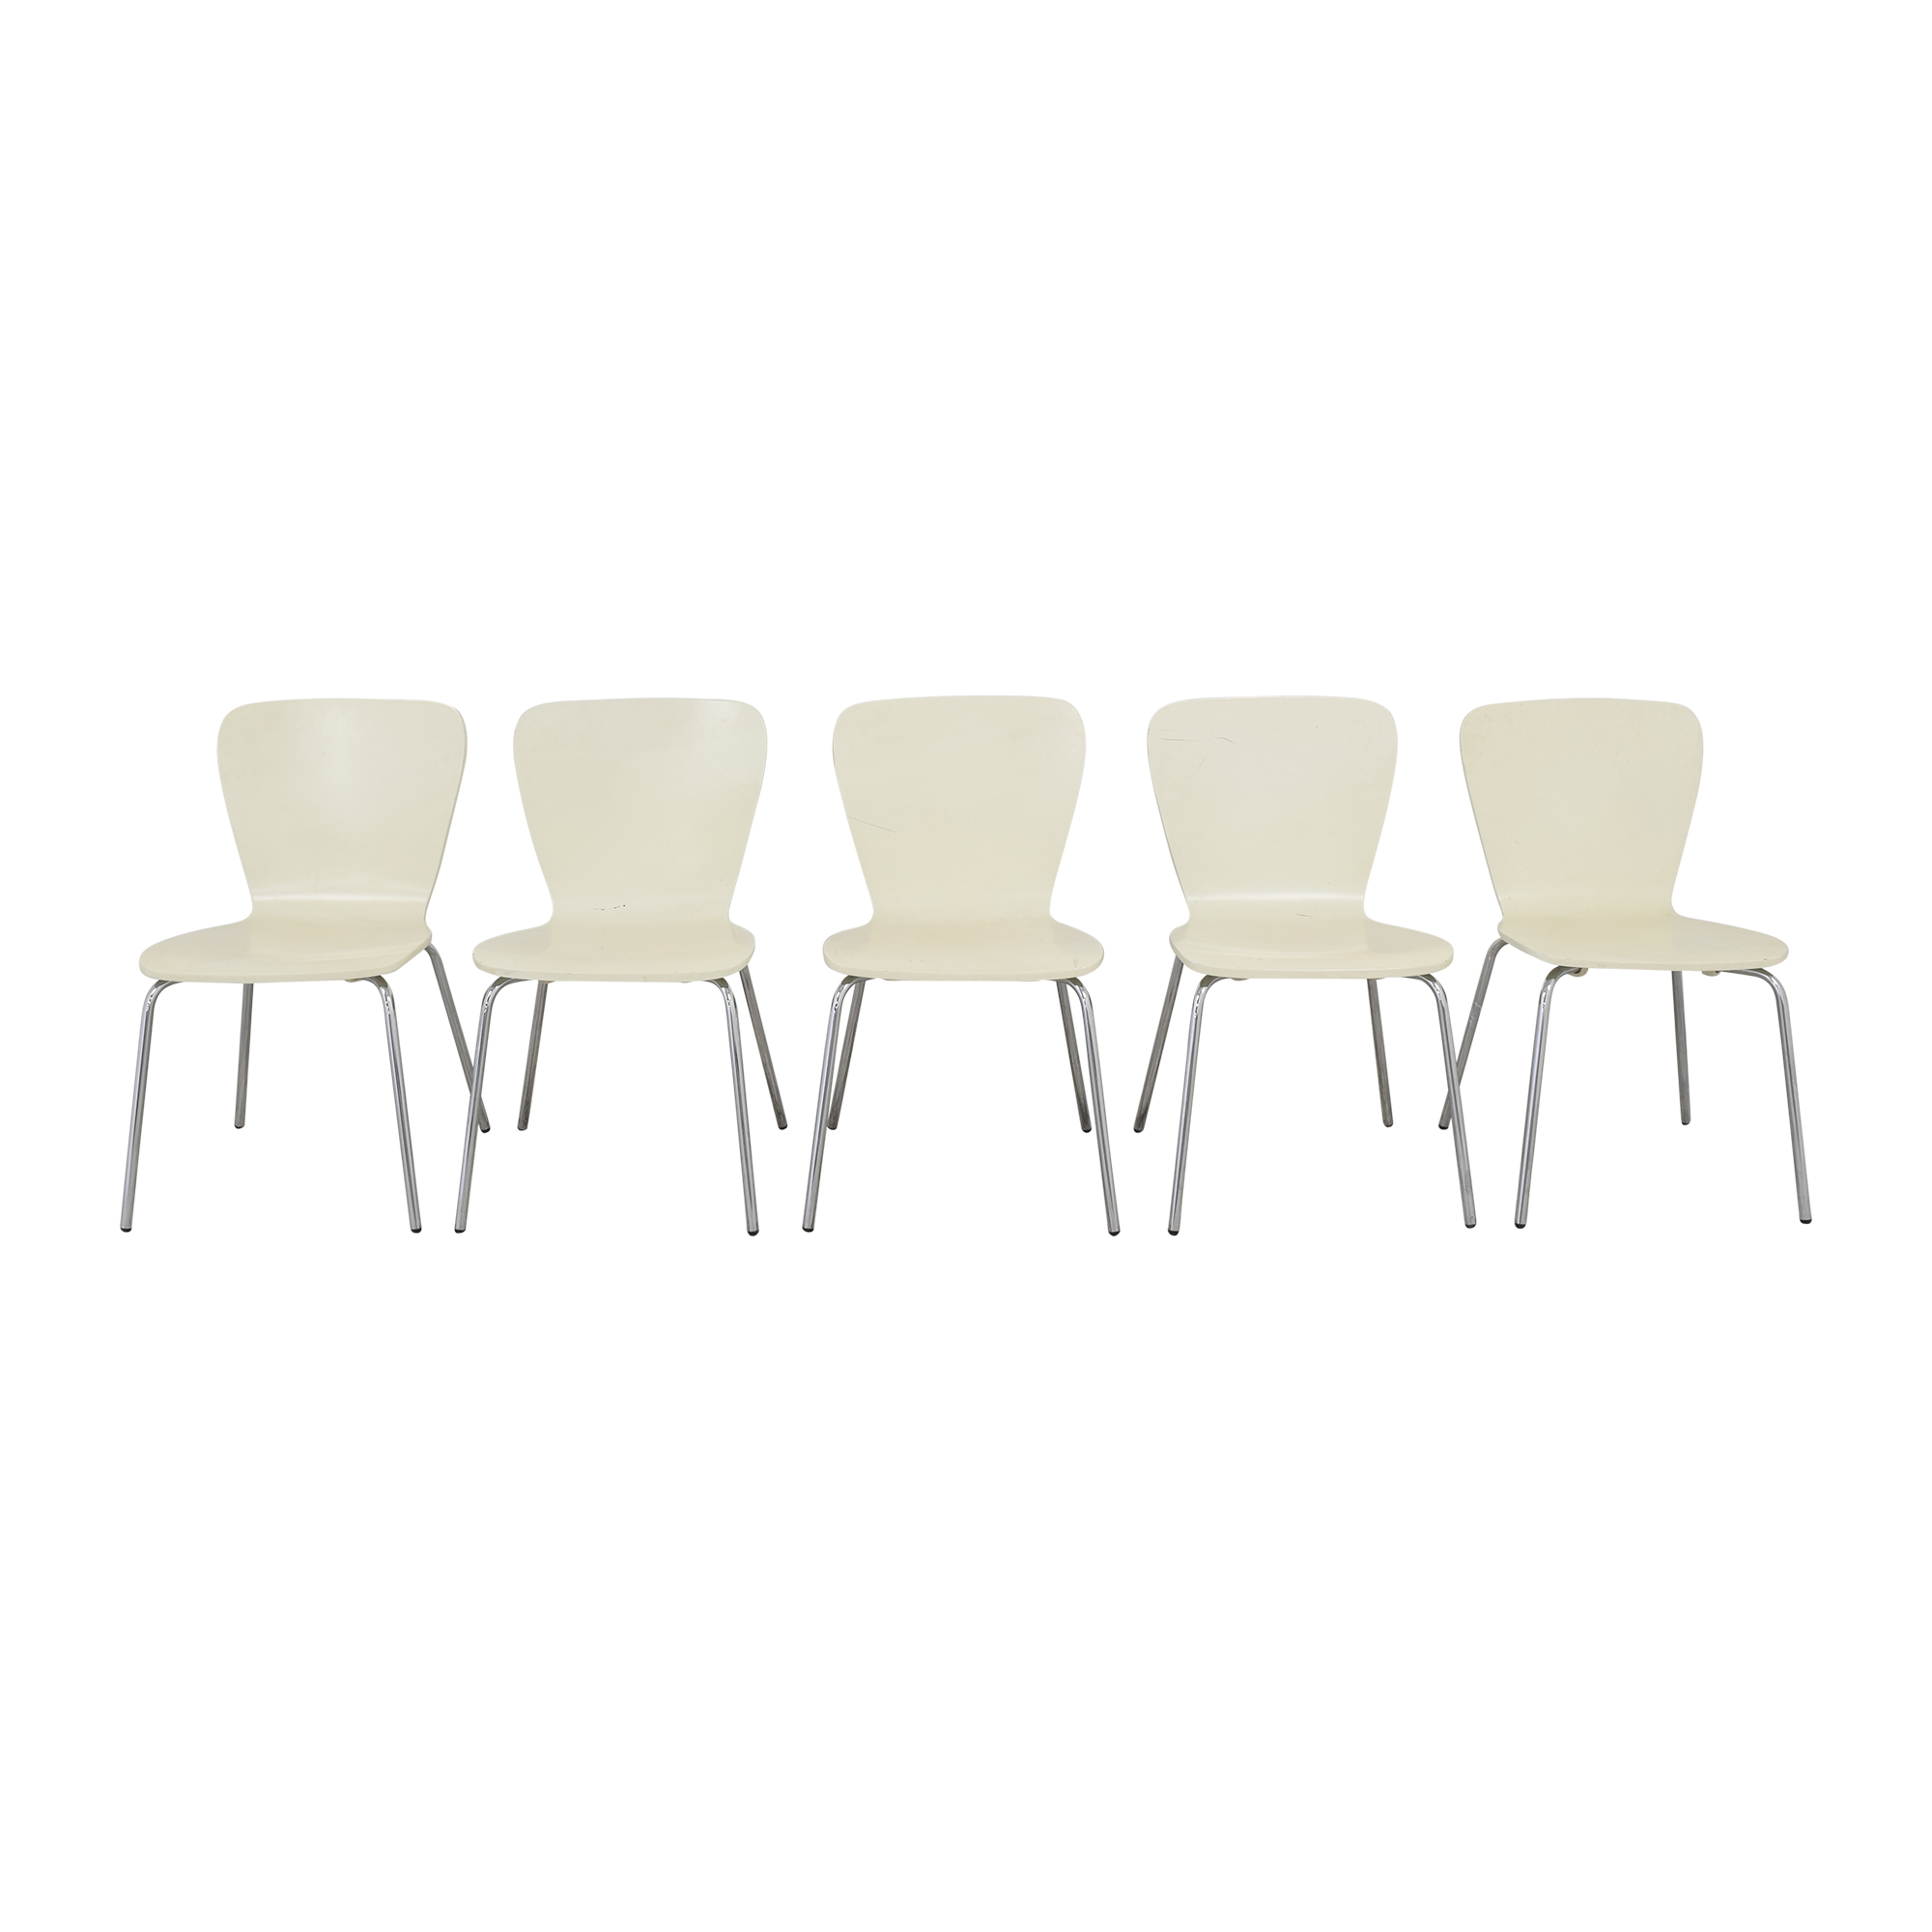 Crate & Barrel Crate & Barrel Felix Side Chairs nj